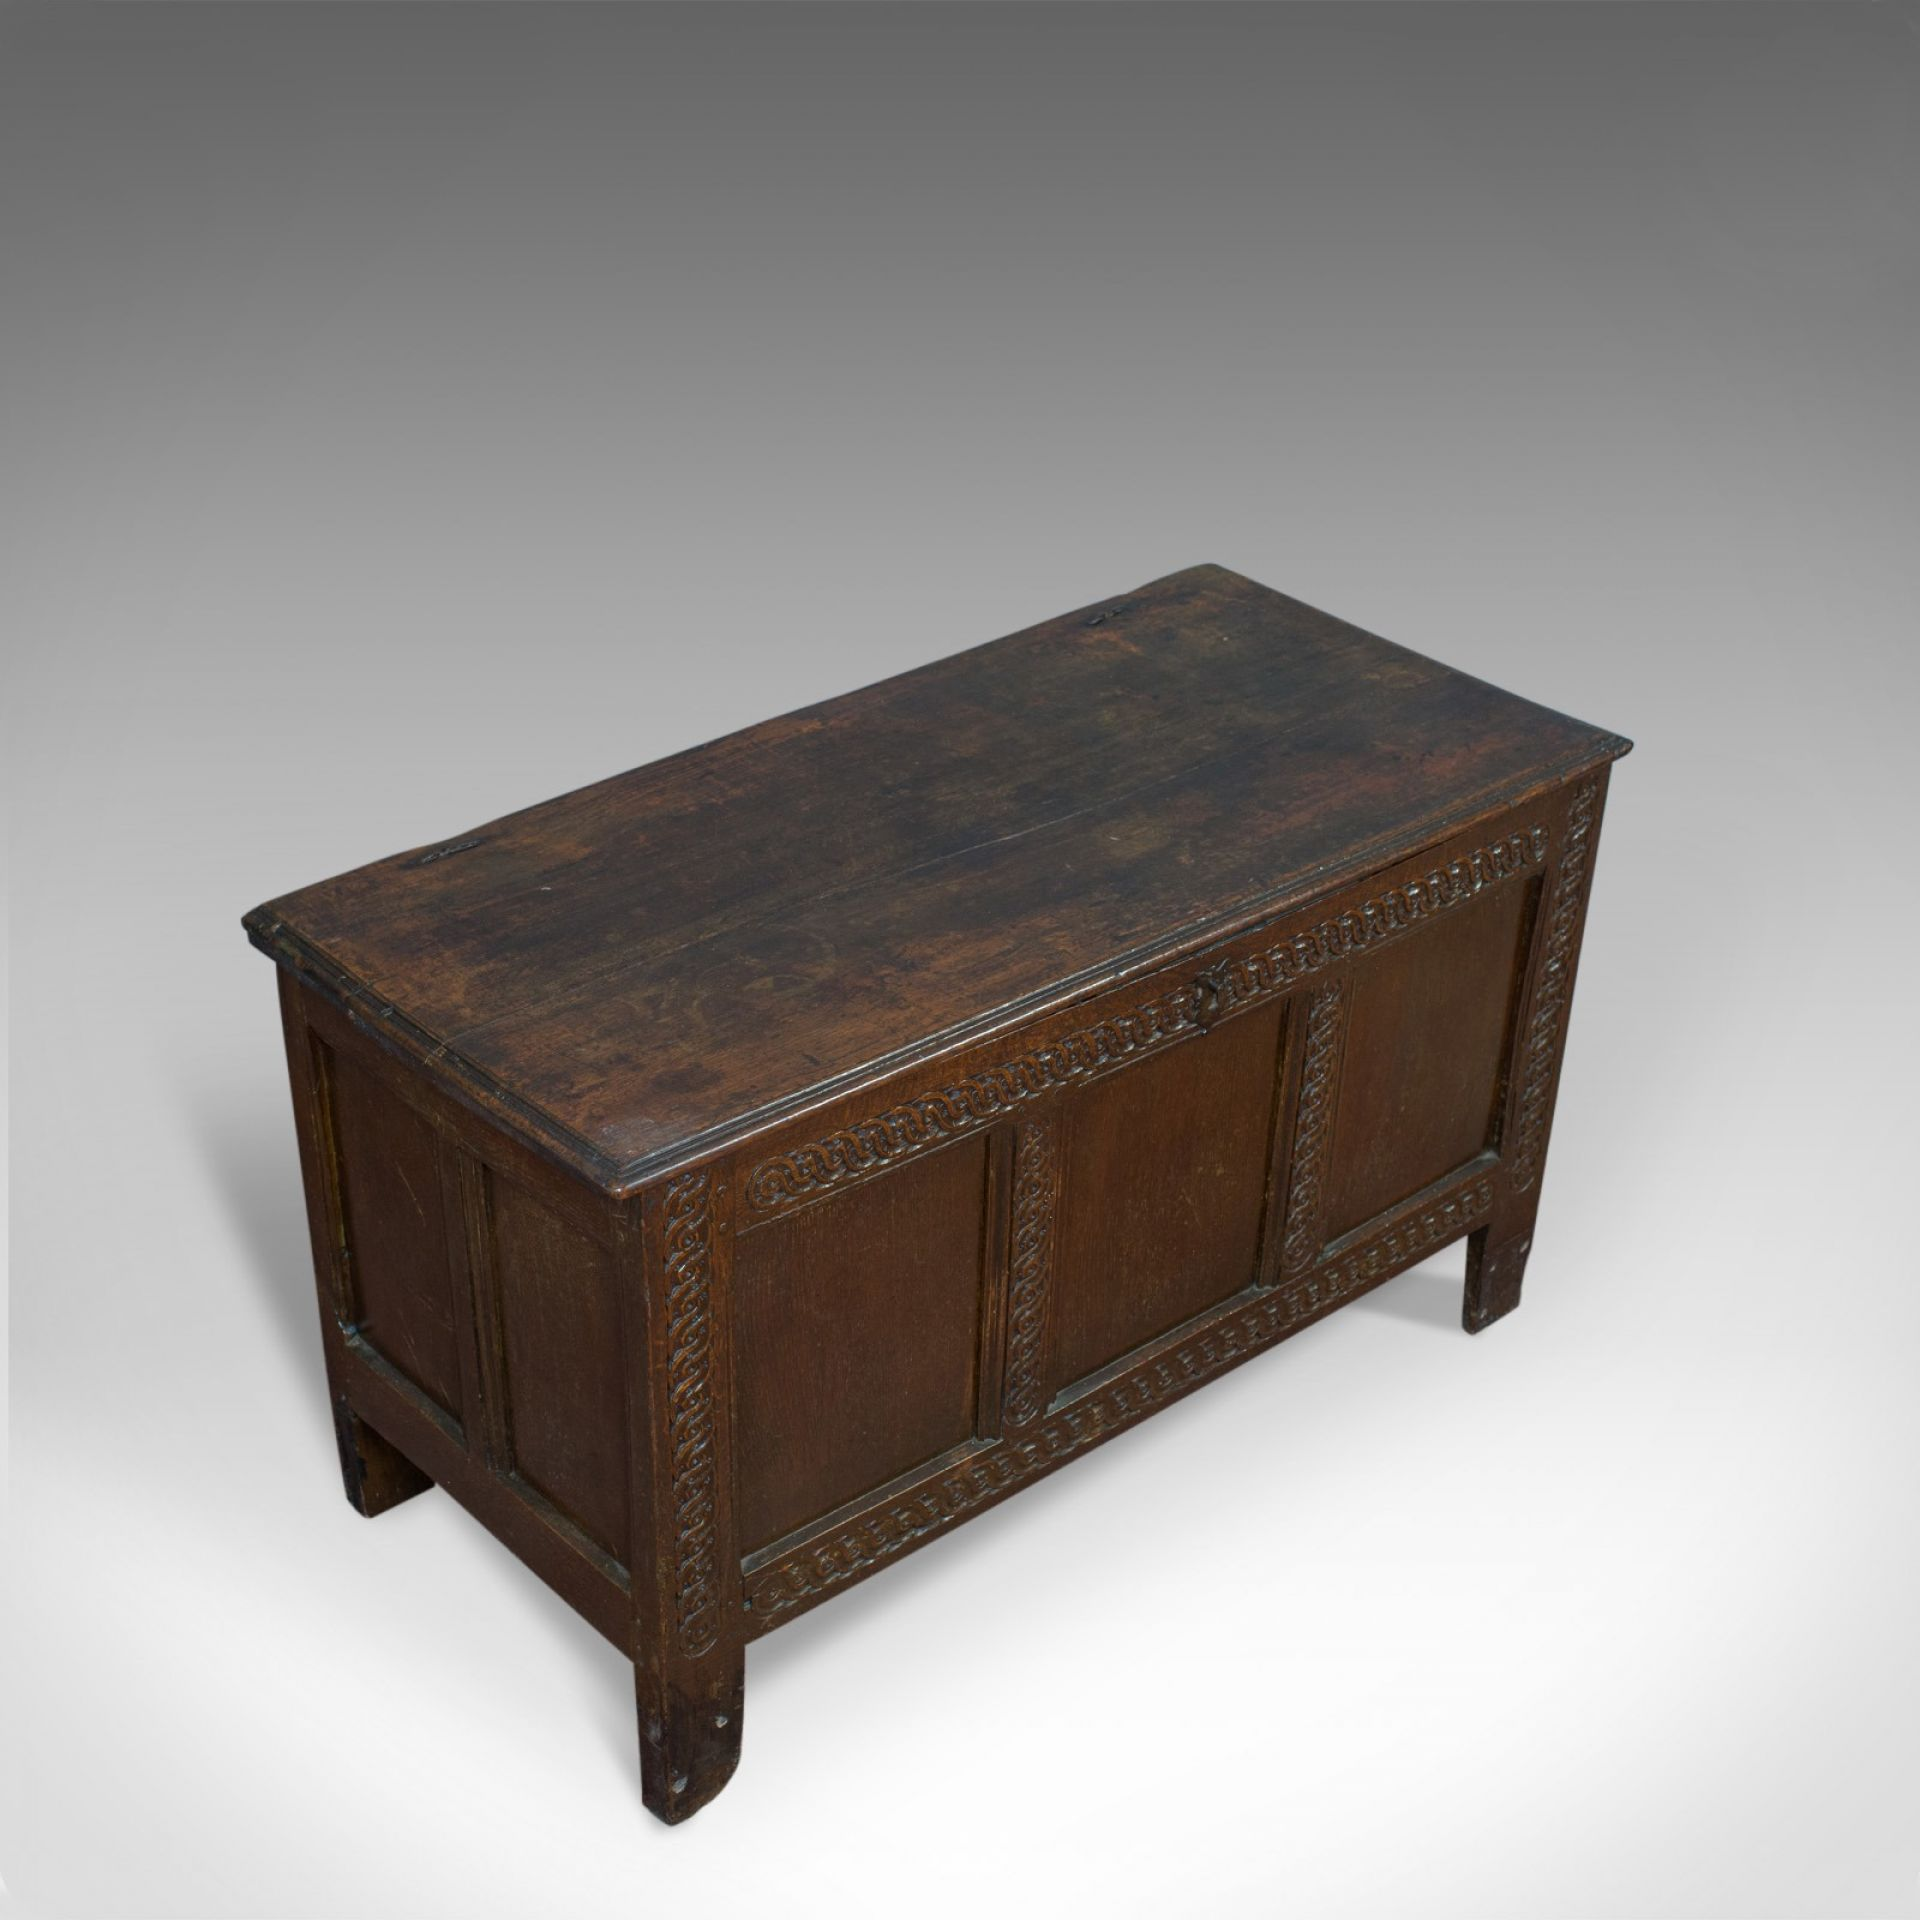 Antique Coffer, Large, English Oak, Joined Chest, Charles II Trunk, Circa 1685